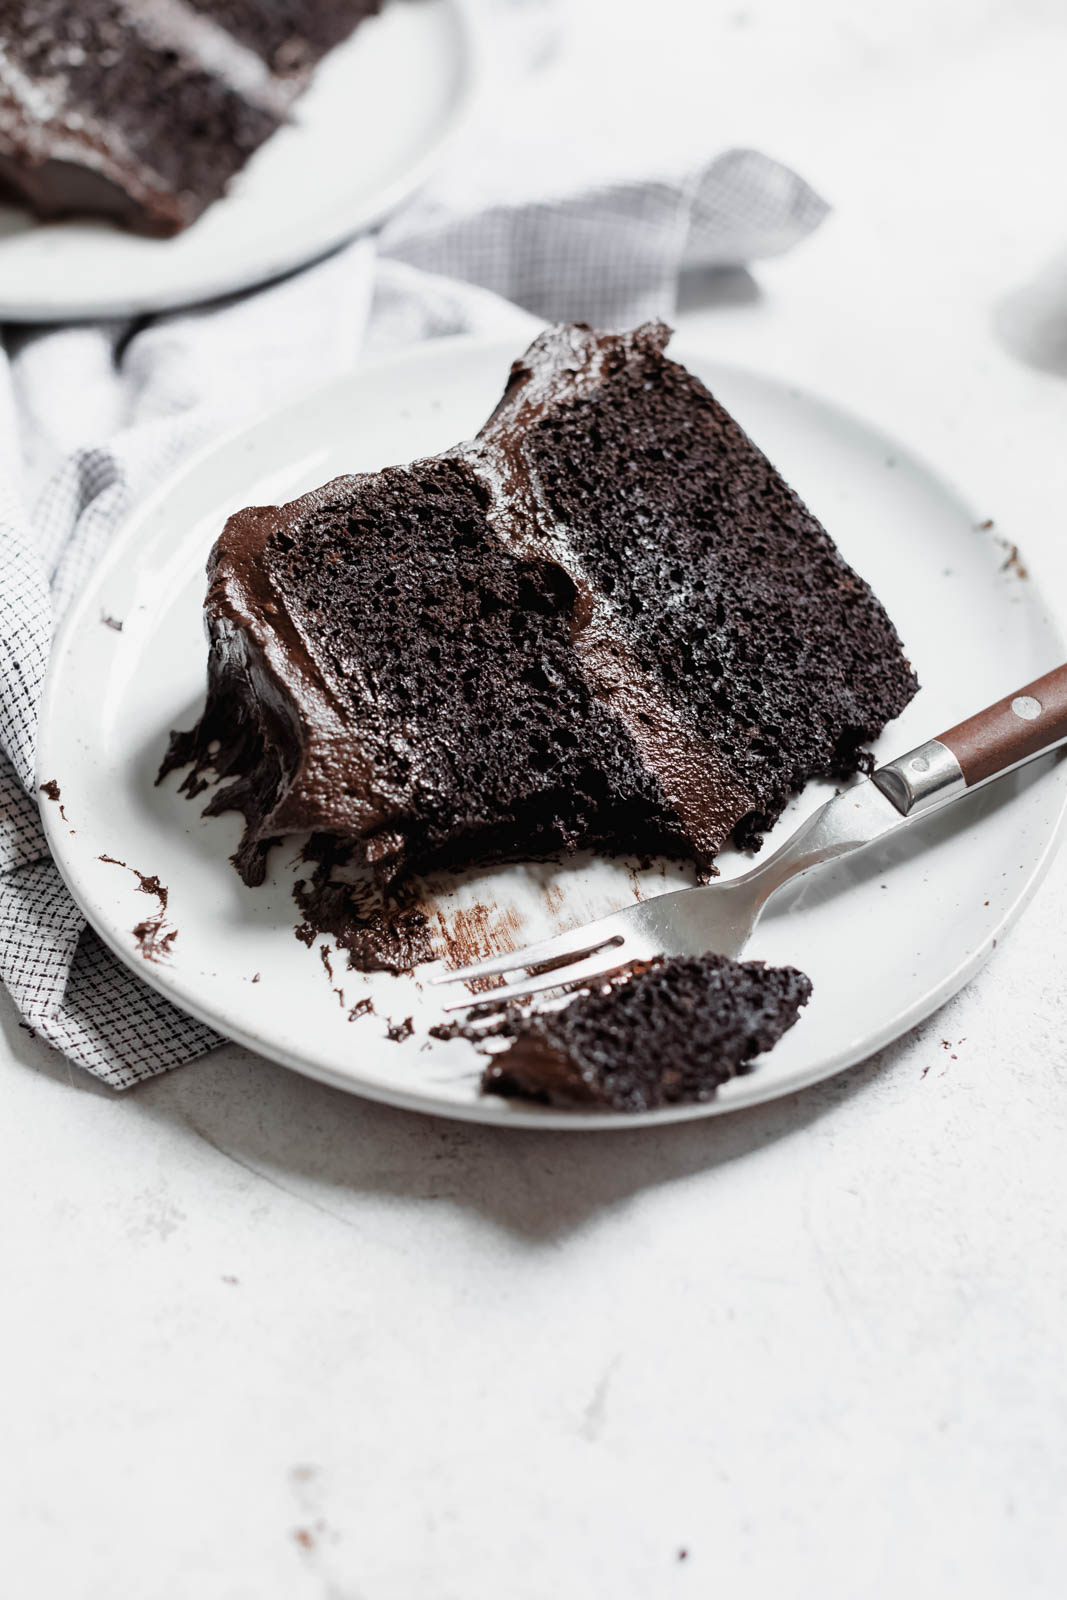 The Blackout Chocolate Cake to end all other chocolate cakes. Aka a moist as heck chocolate cake with a sinful chocolate buttercream frosting.